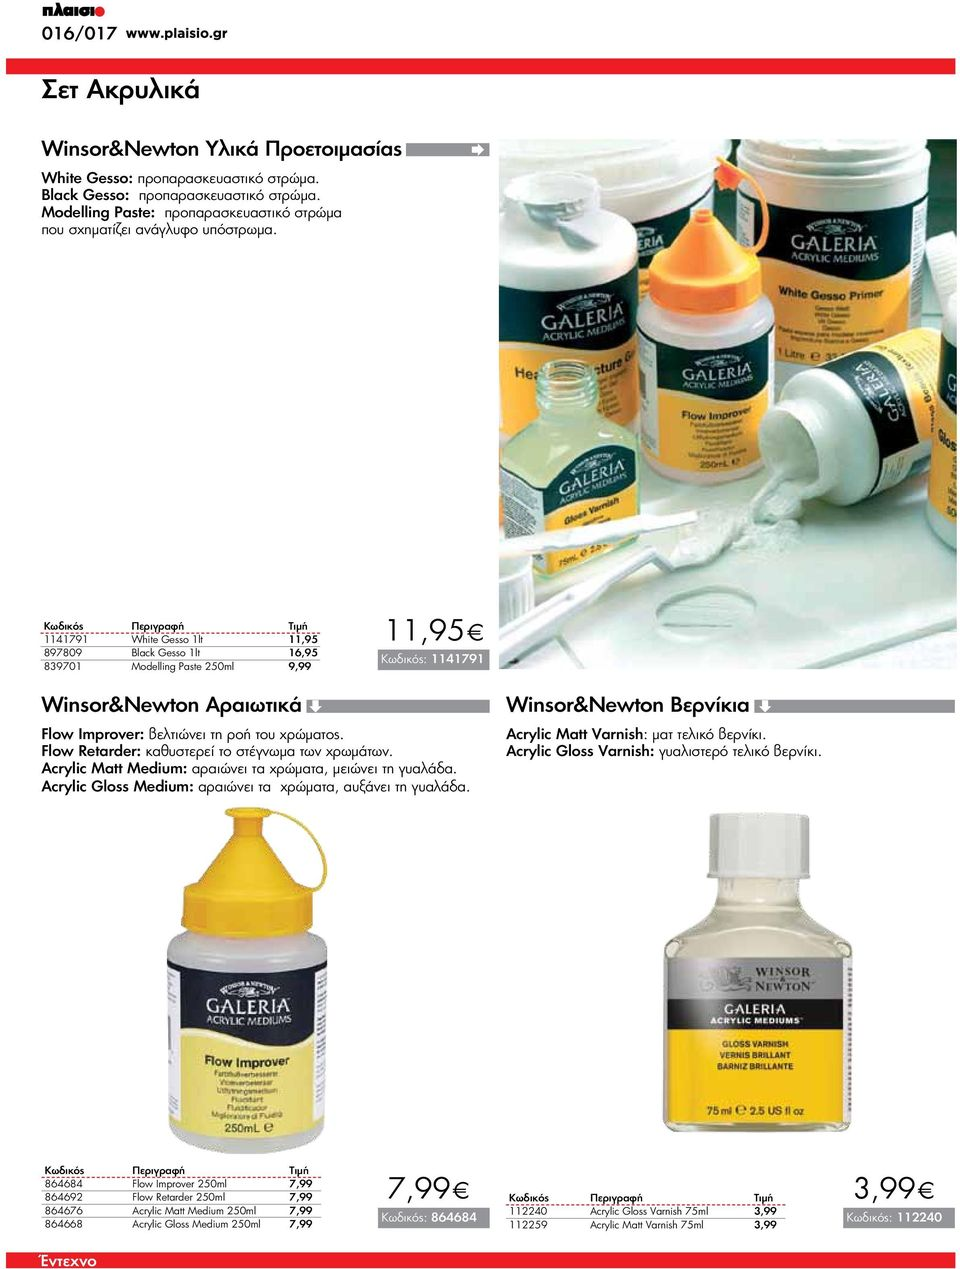 1141791 897809 839701 White Gesso 1lt Black Gesso 1lt Modelling Paste 250ml 11,95 16,95 9,99 11,95 : 1141791 Winsor&Newton Αραιωτικά Flow Improver: βελτιώνει τη ροή του χρώματος.